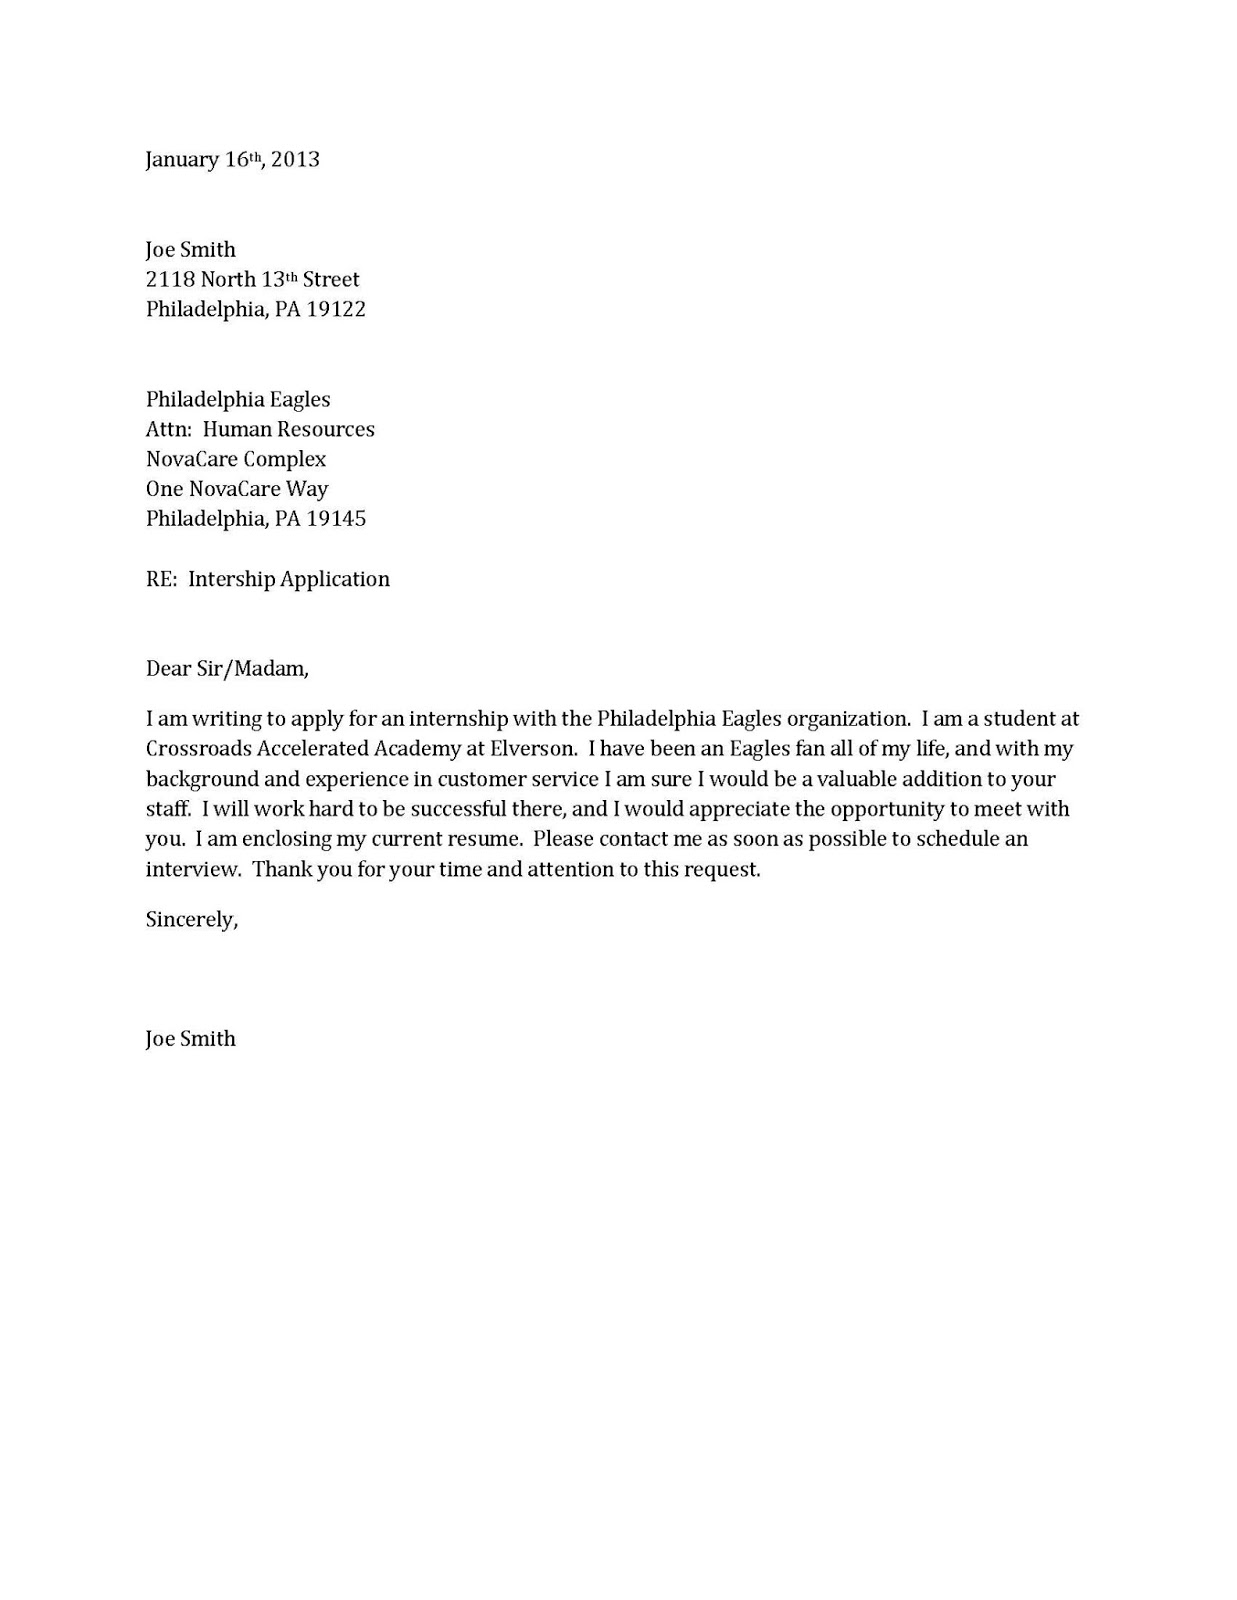 cover letter example for